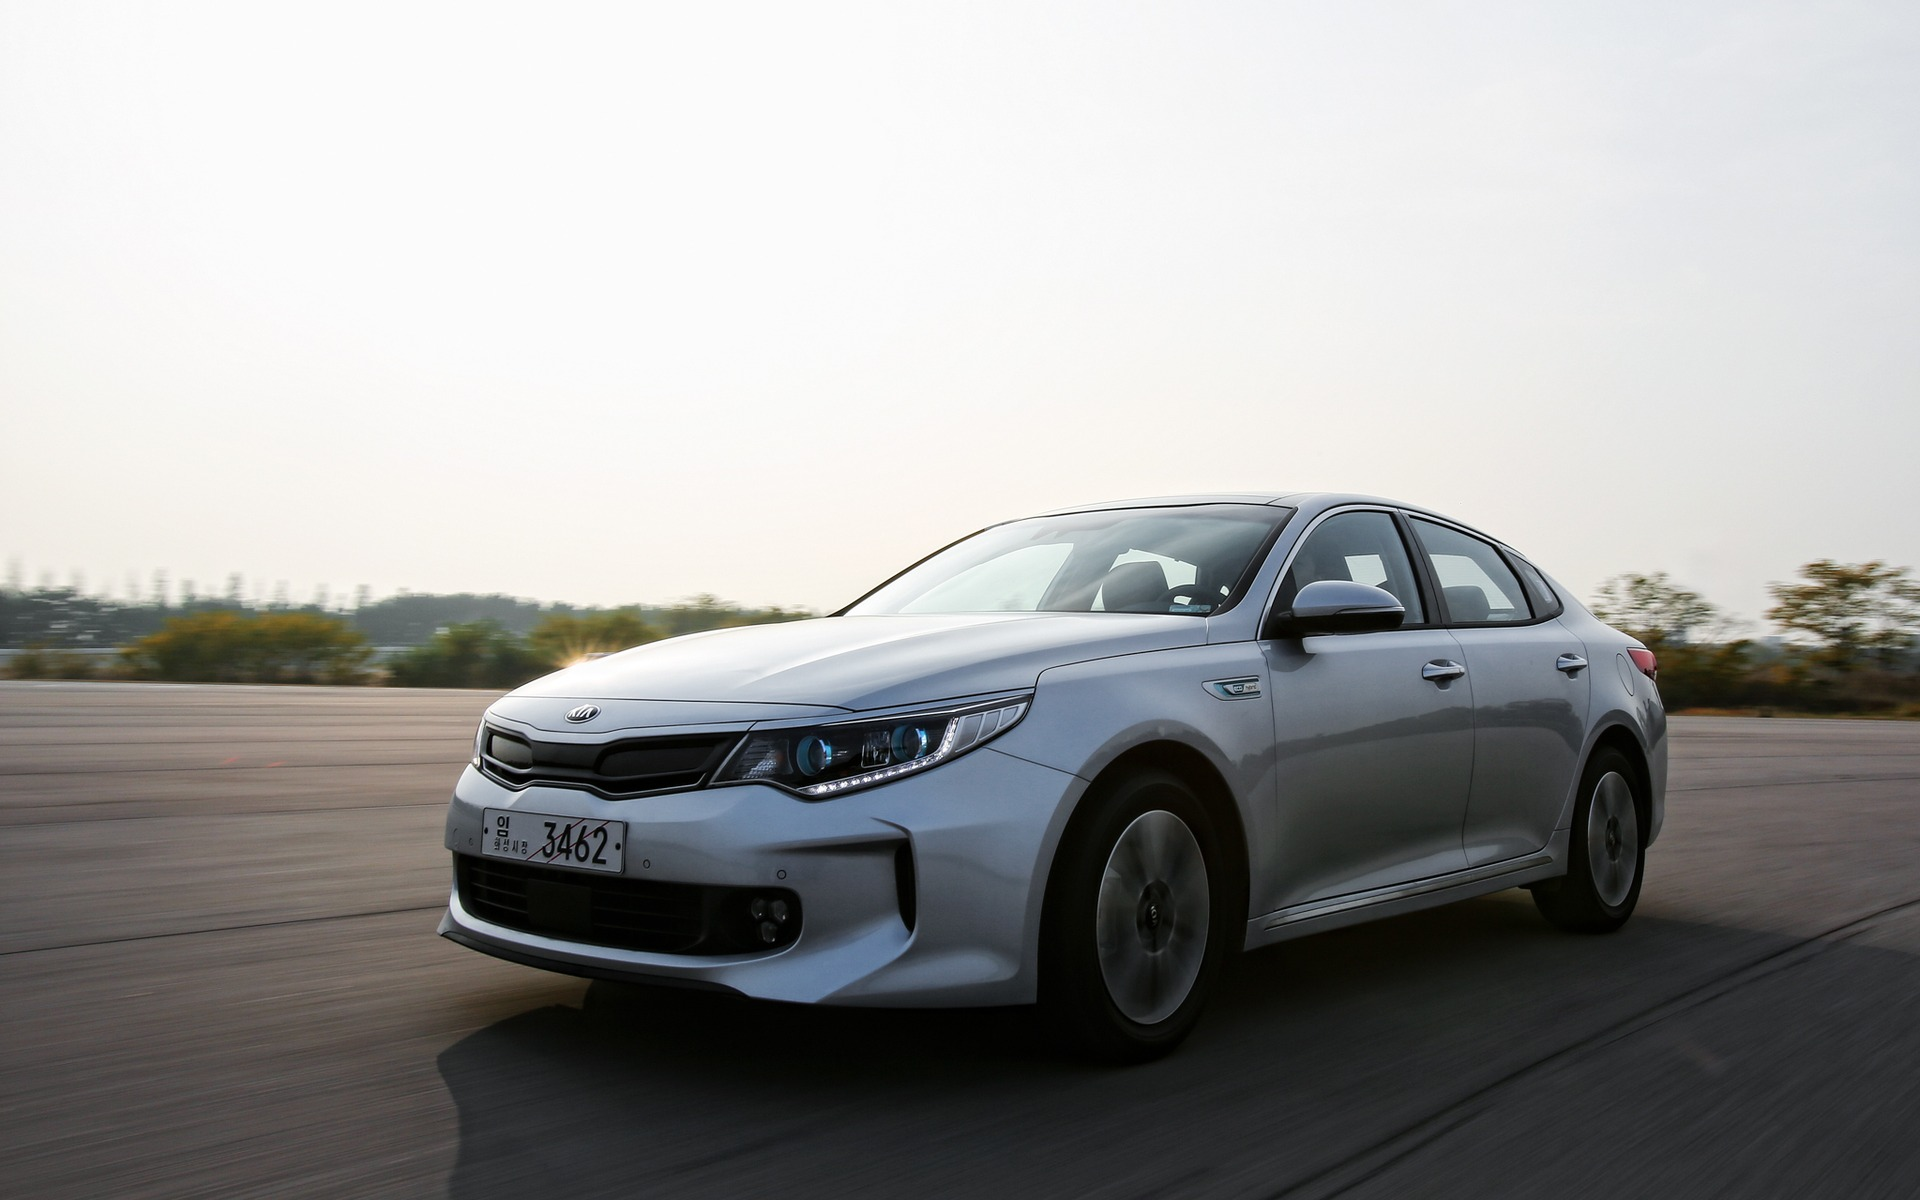 16 2016 Kia Optima owners manual